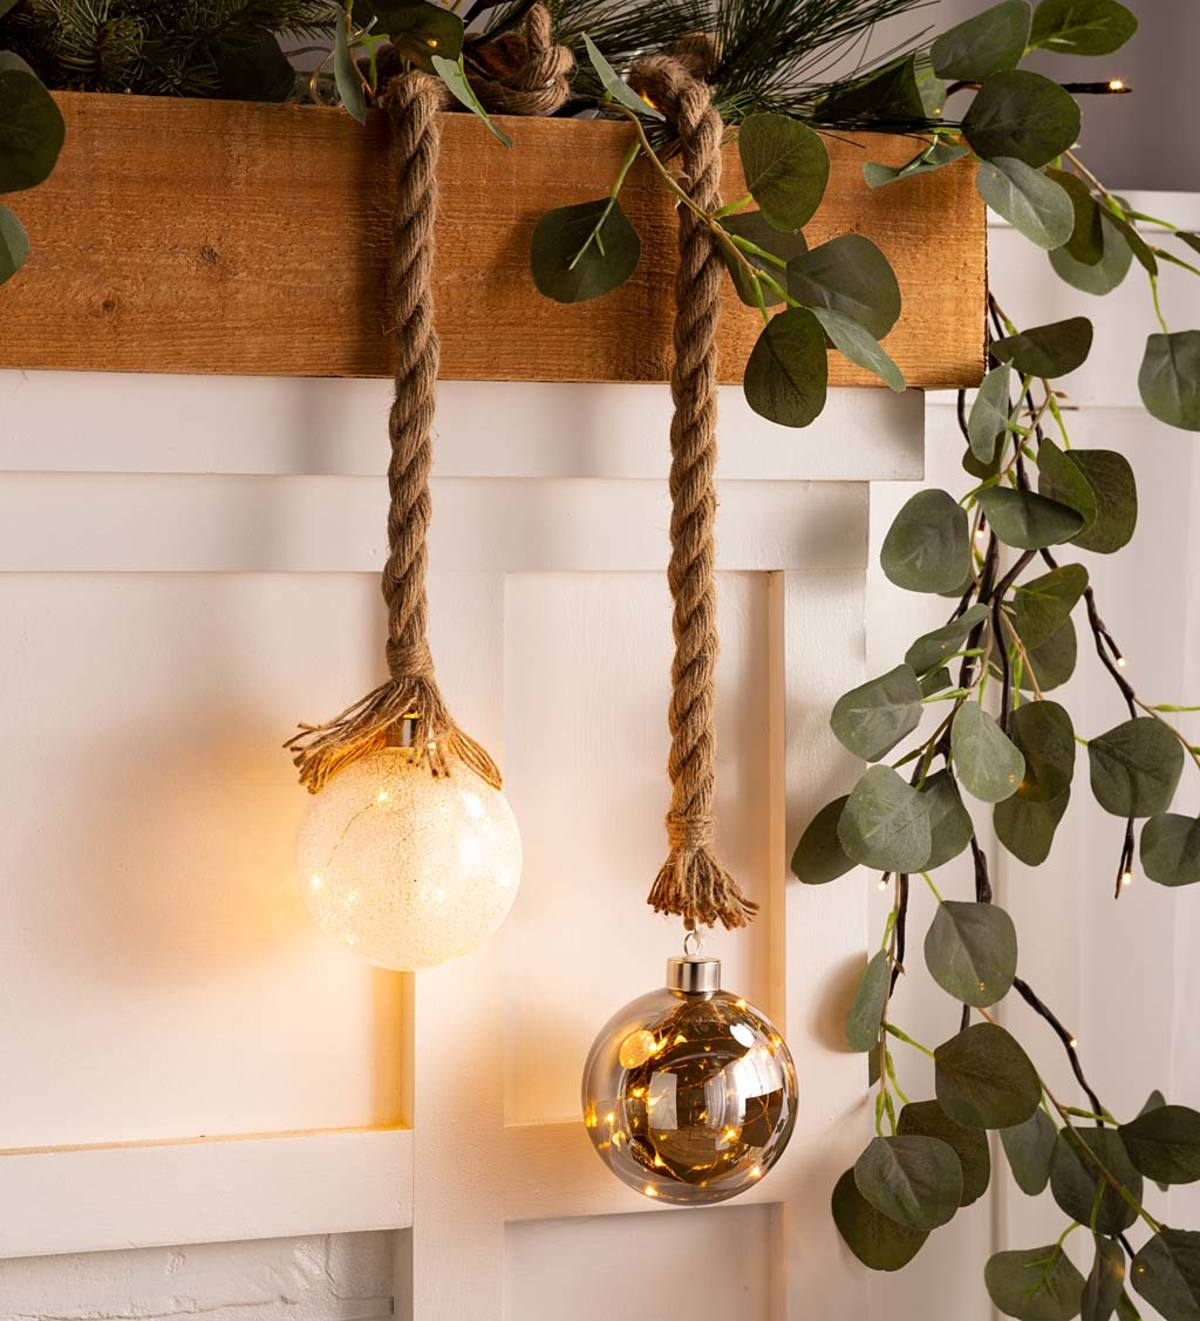 Indoor Lighted Ornaments With Hanging Rope and Integrated Timer